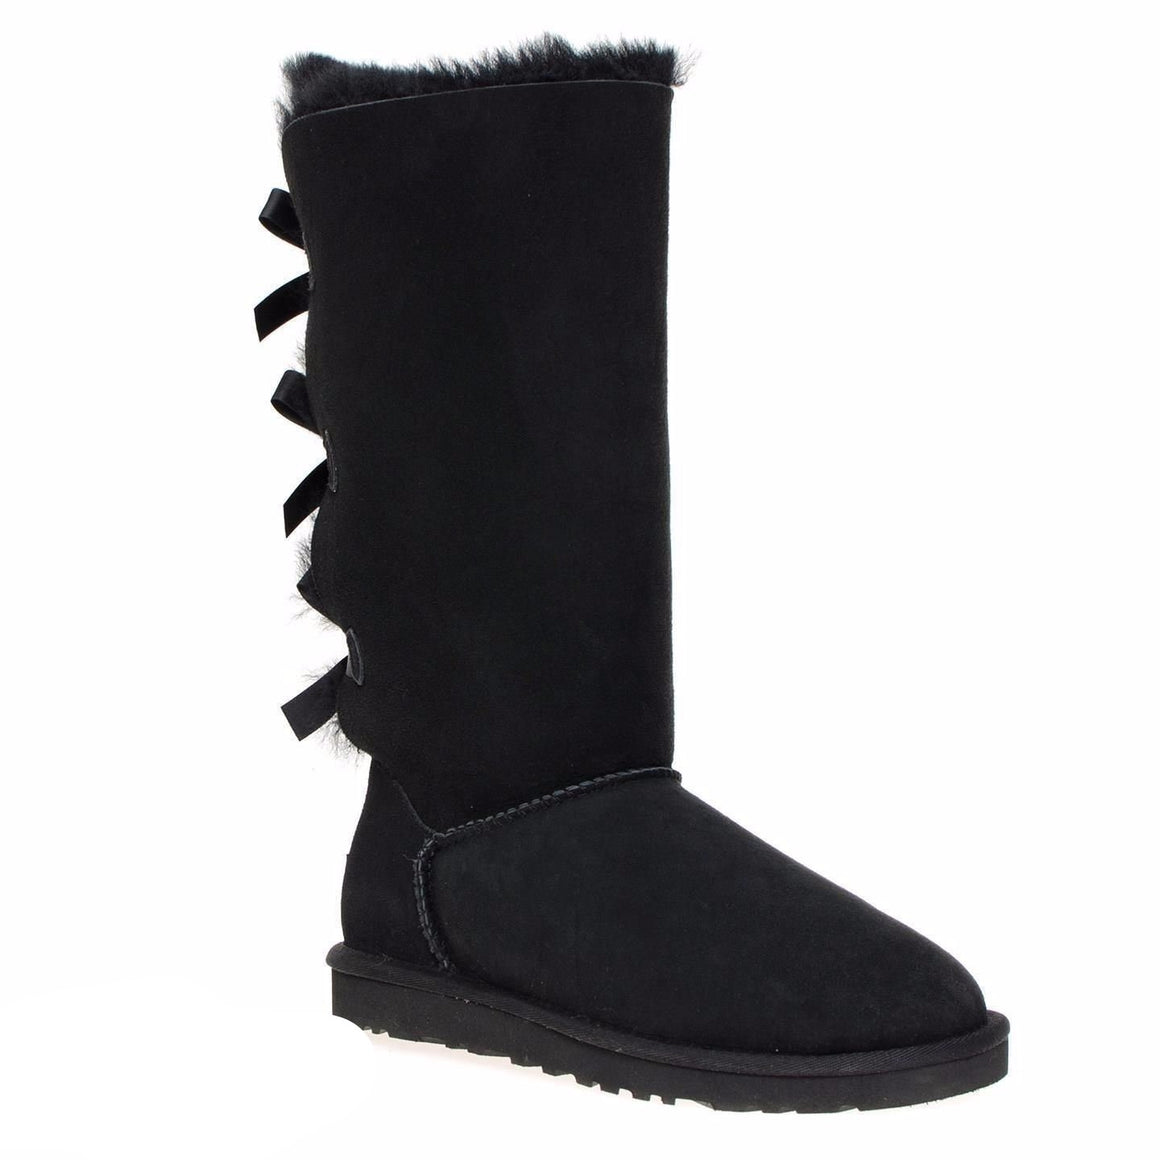 UGG Bailey Bow Tall Black Boots